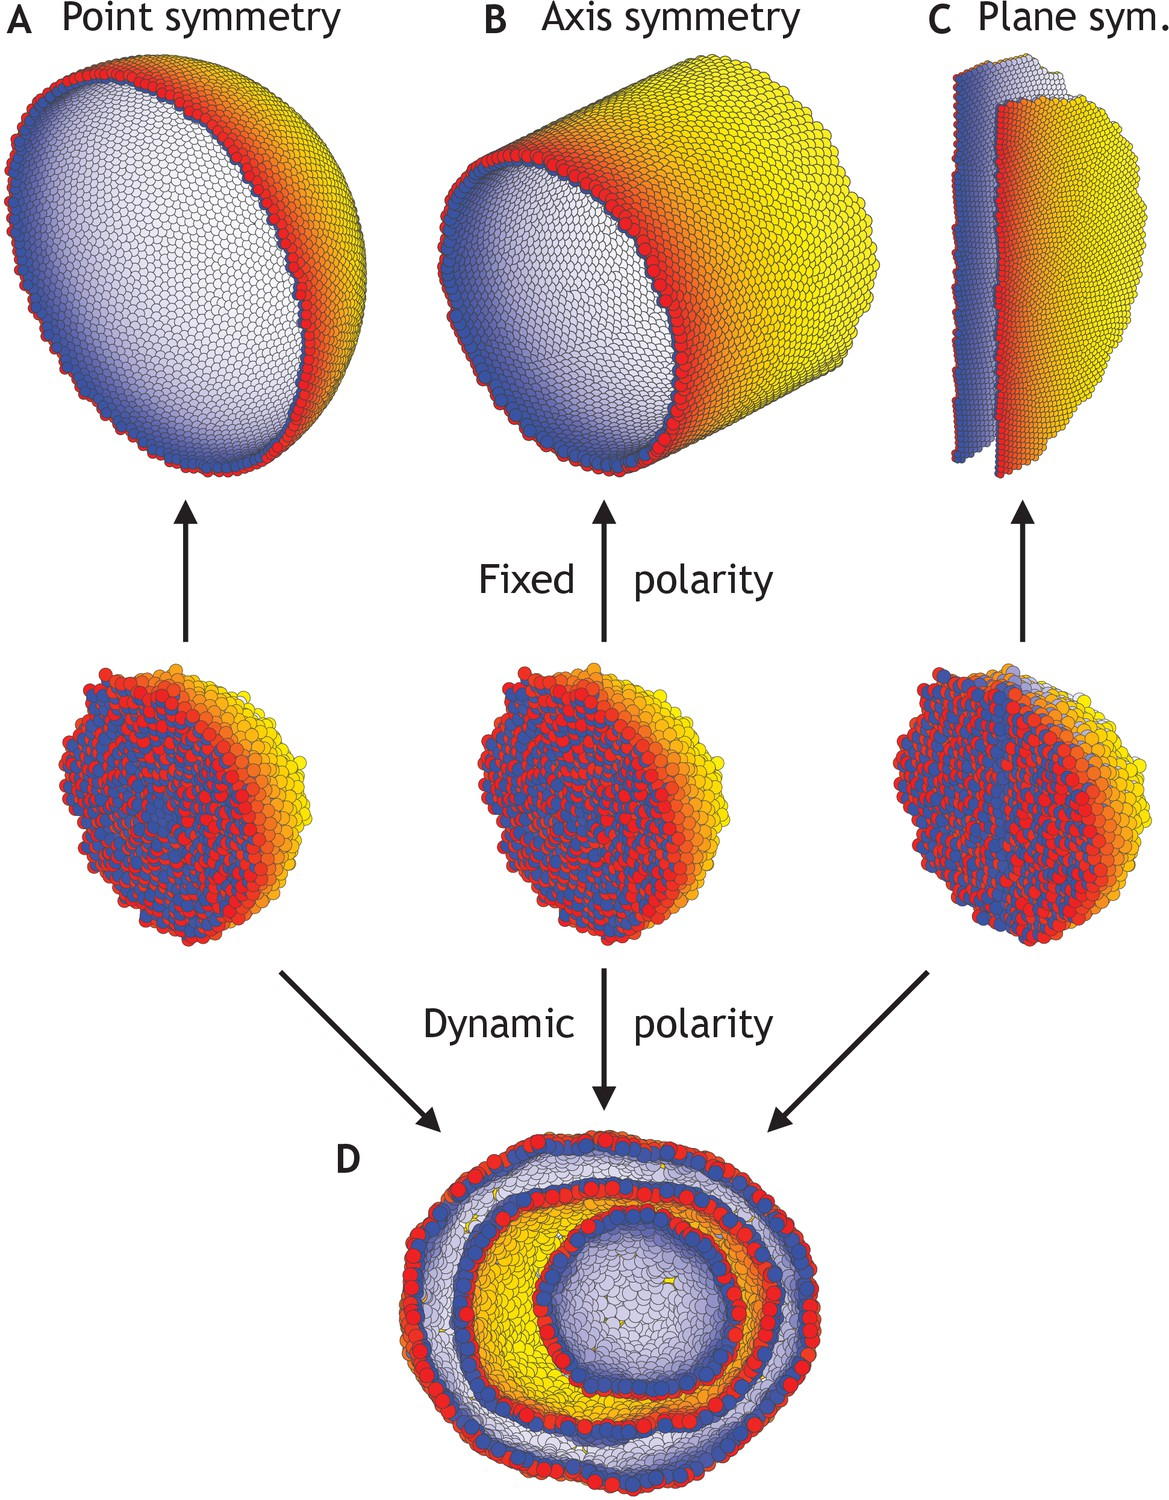 Theoretical tool bridging cell polarities with development